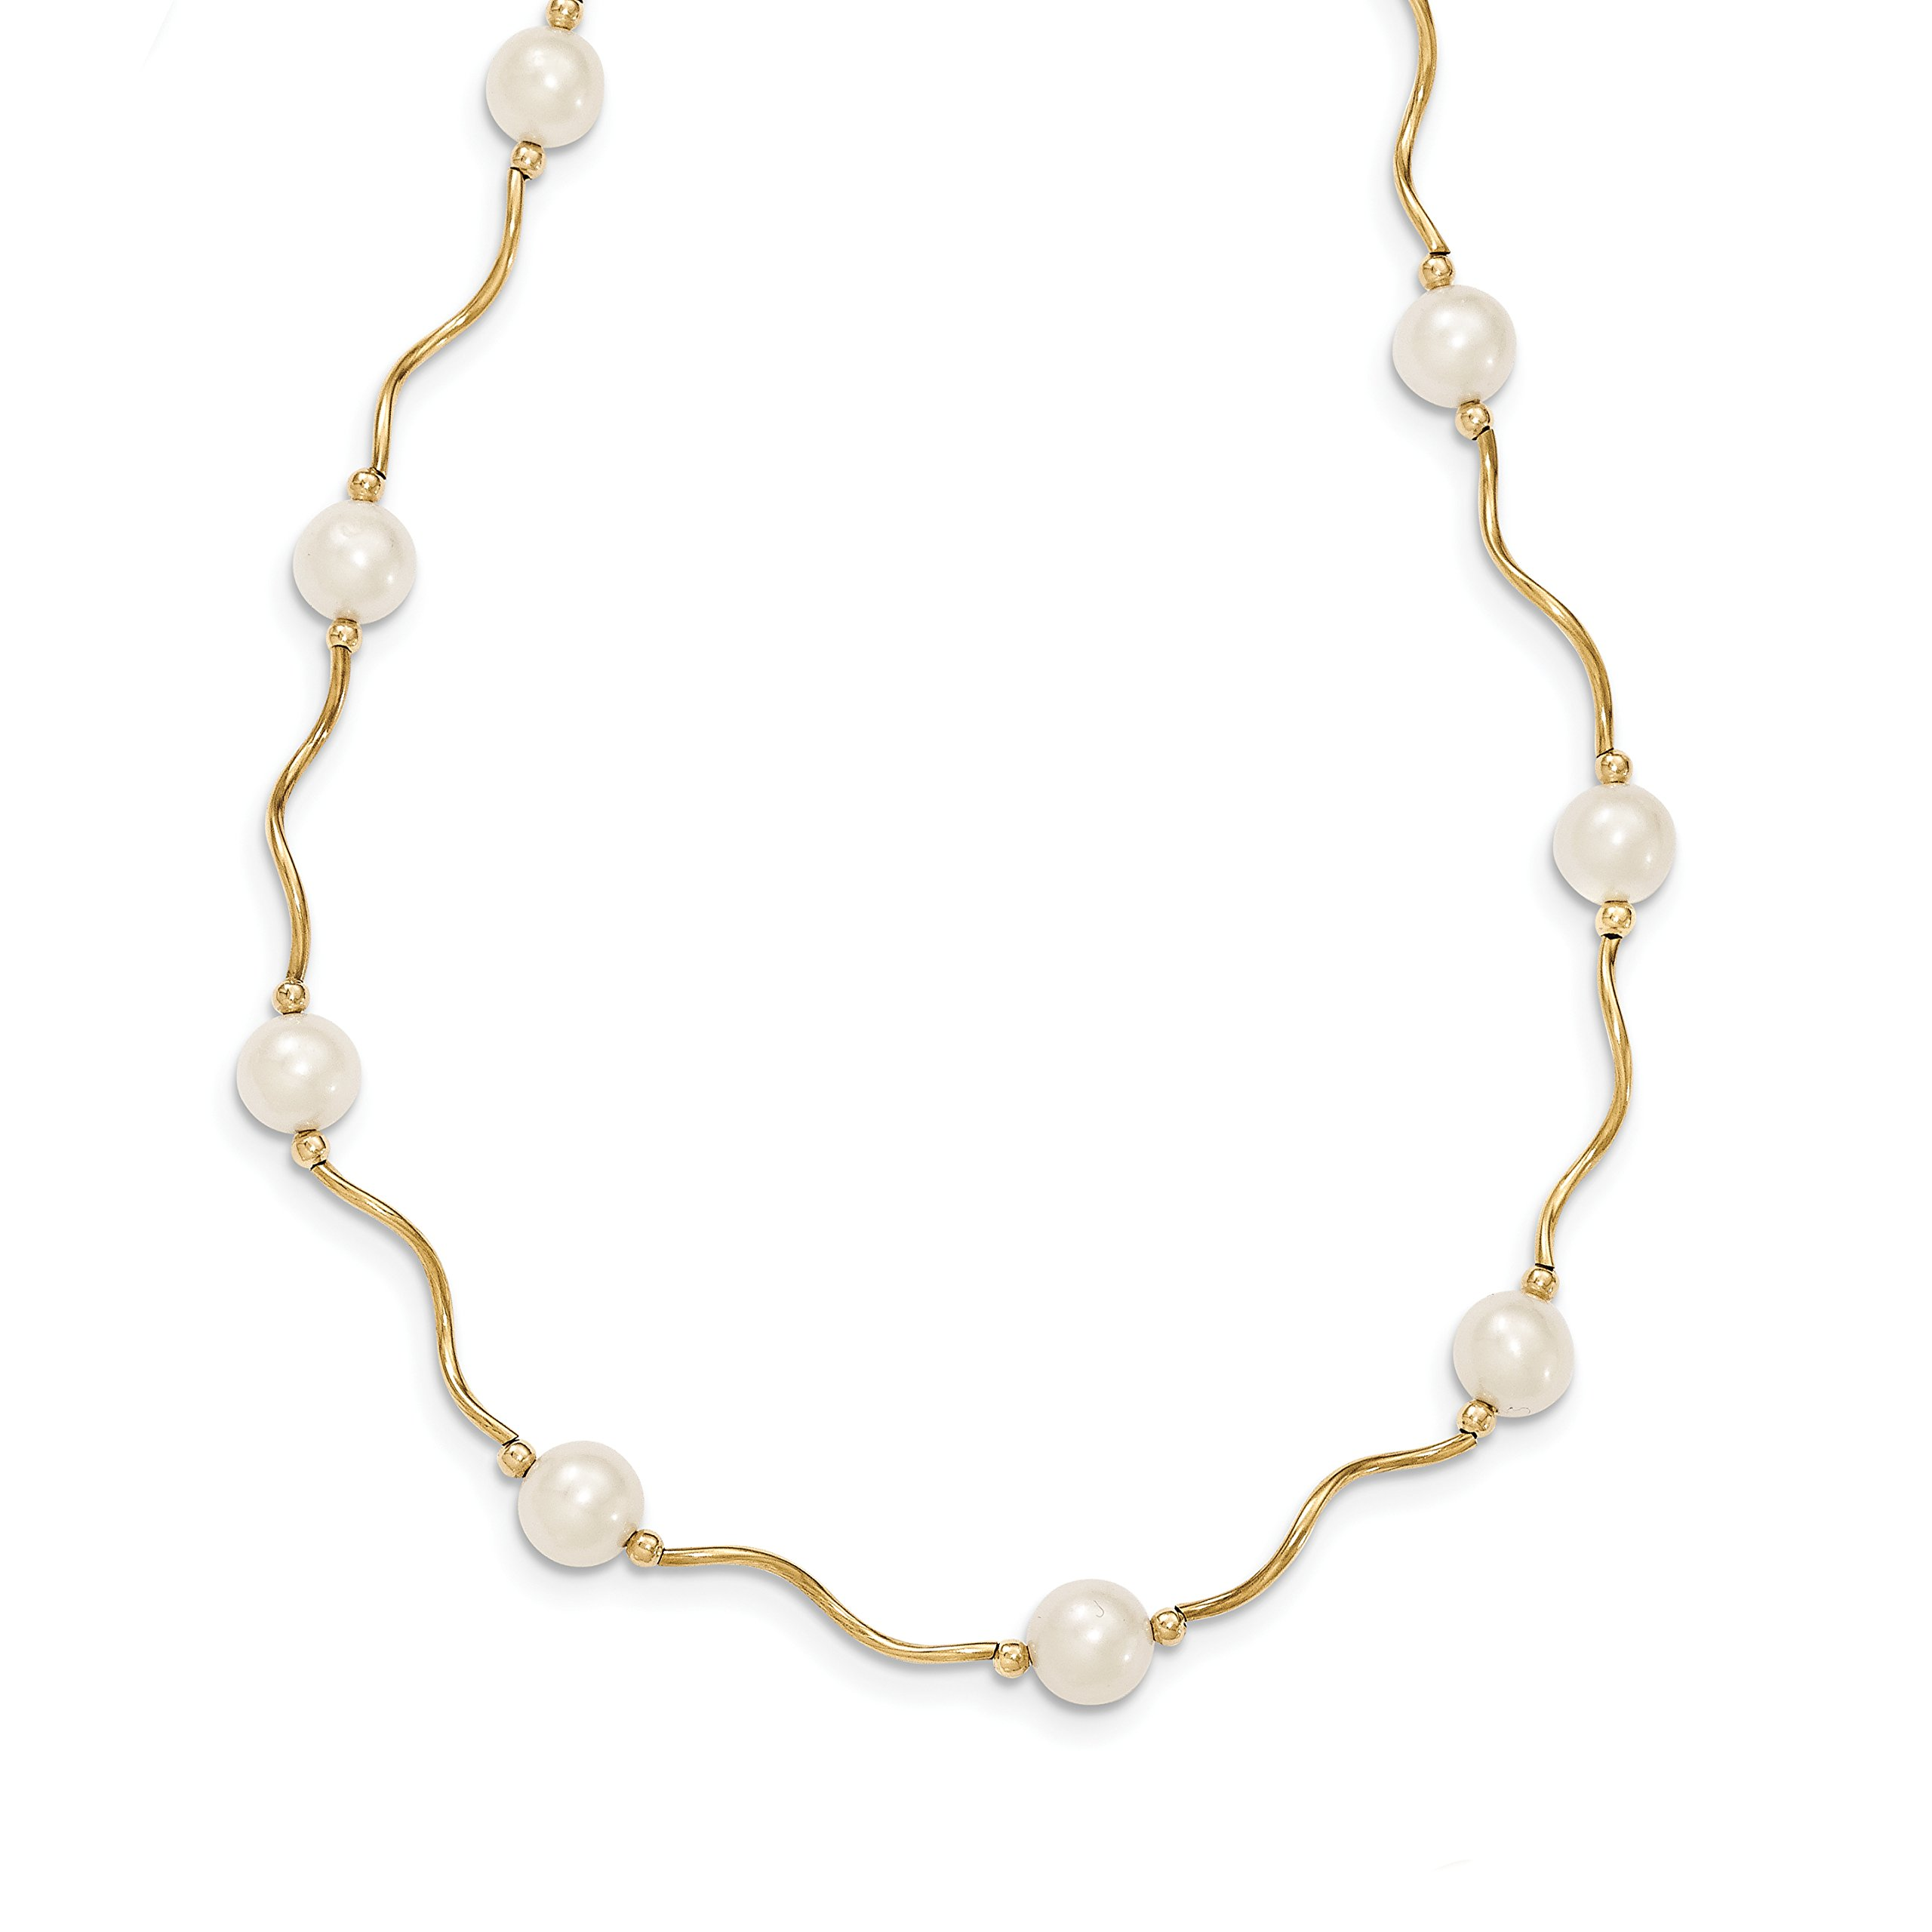 ICE CARATS 14k Yellow Gold Curved Bead 7mm White Freshwater Cultured Pearl Chain Necklace Fine Jewelry Gift Set For Women Heart